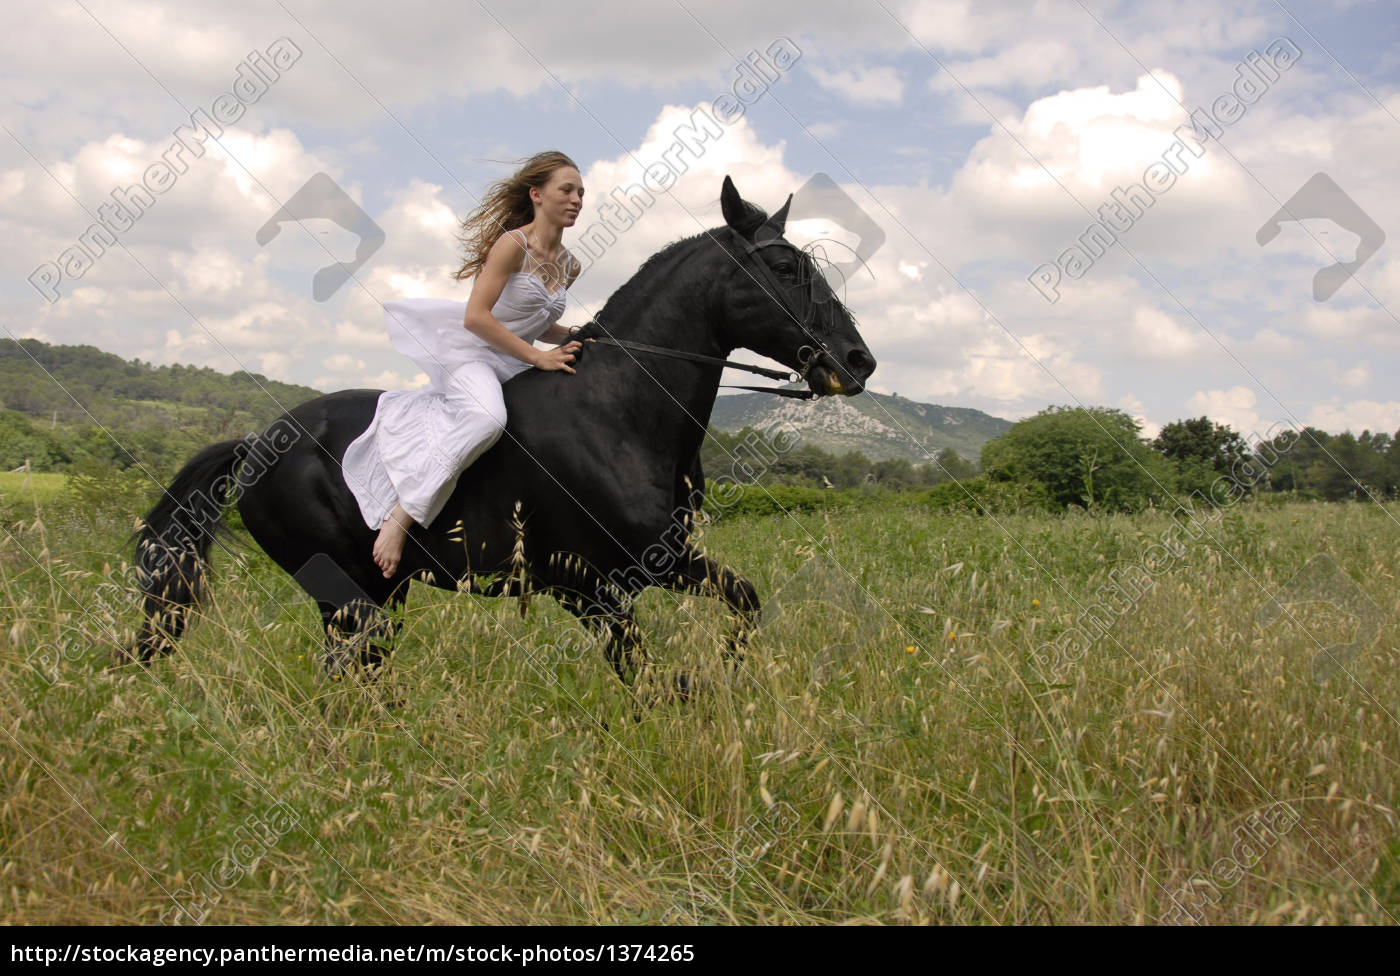 riding, wedding, woman - 1374265